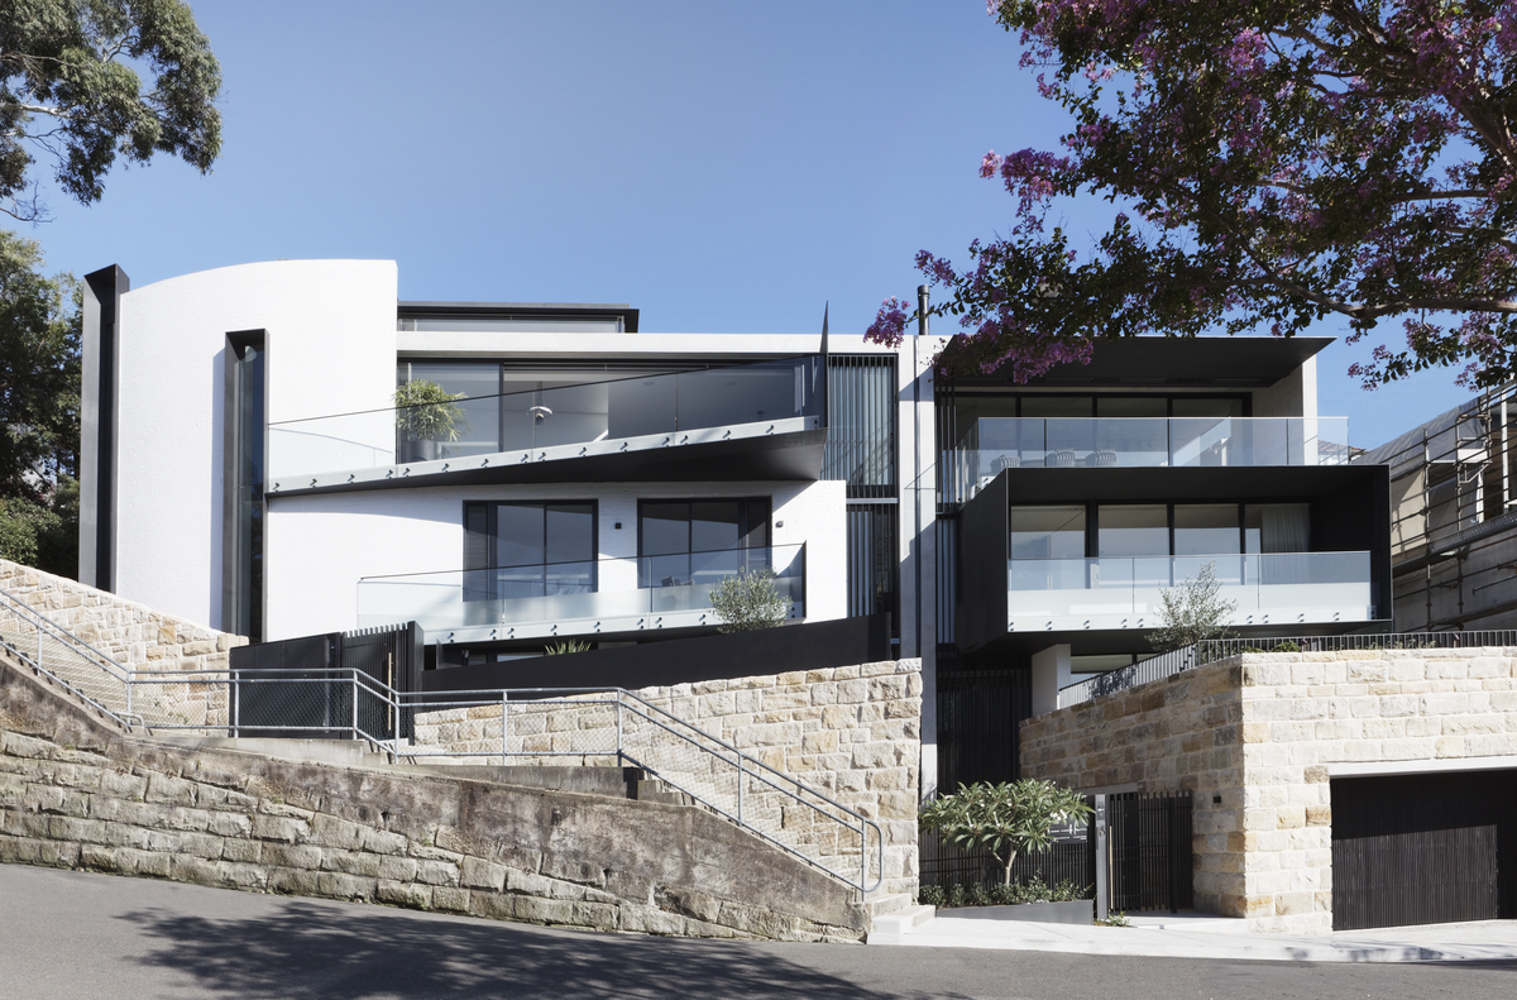 twin-houses-architecture-saville-isaacs-the-design-emotive-13.jpg